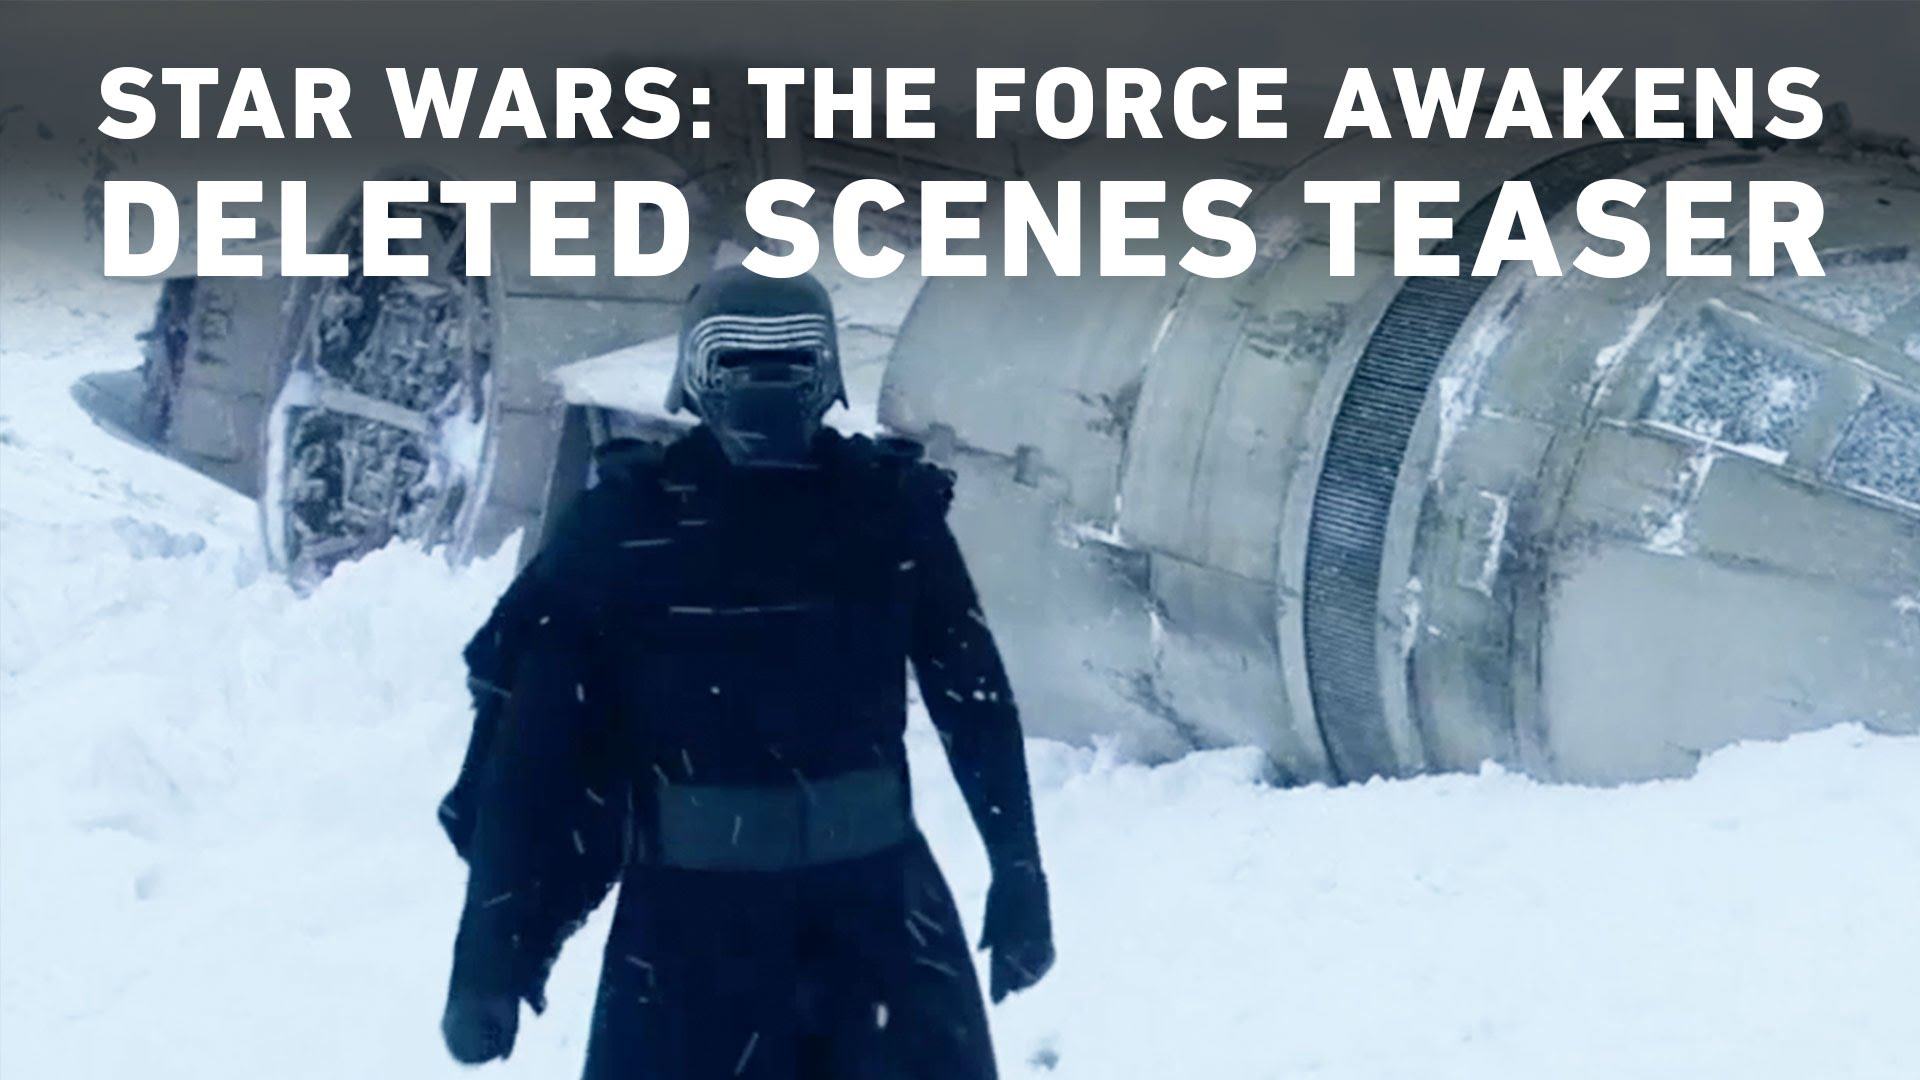 Star Wars: The Force Awakens Home Video Deleted Scenes Clip